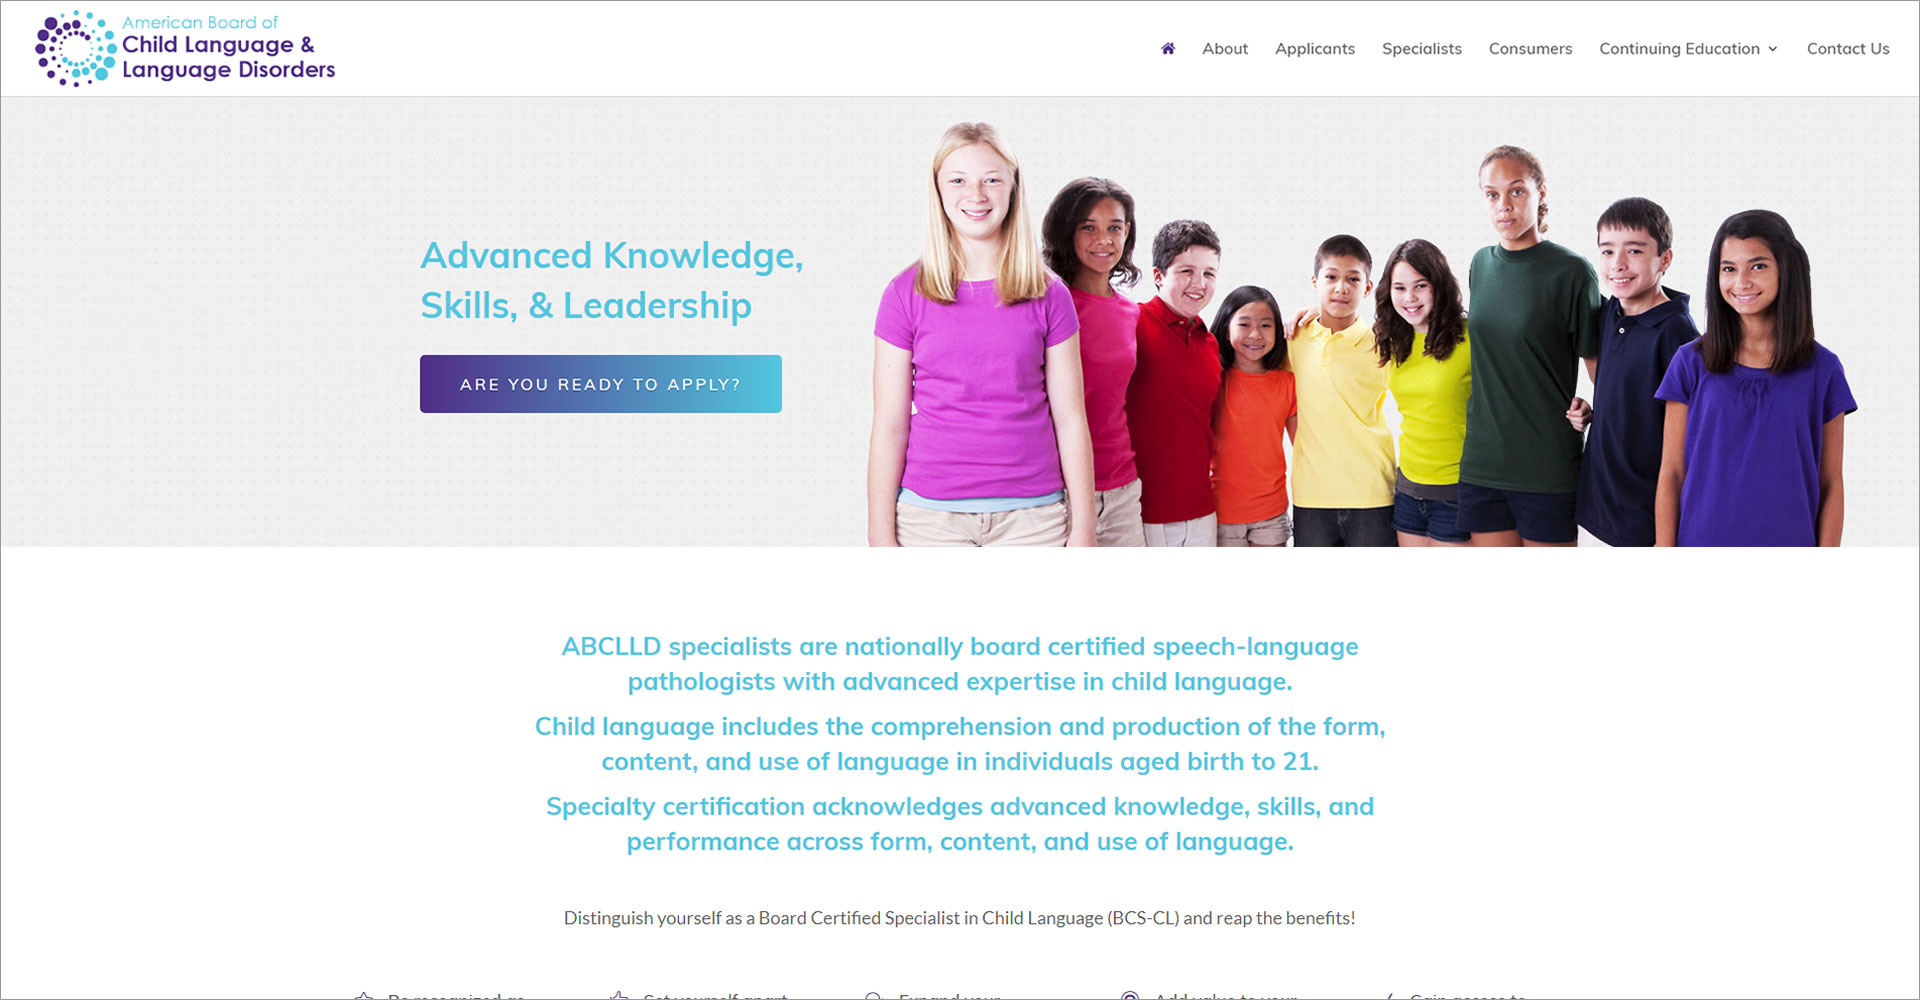 American Board of Child Language and Language Disorders - Zoda Design